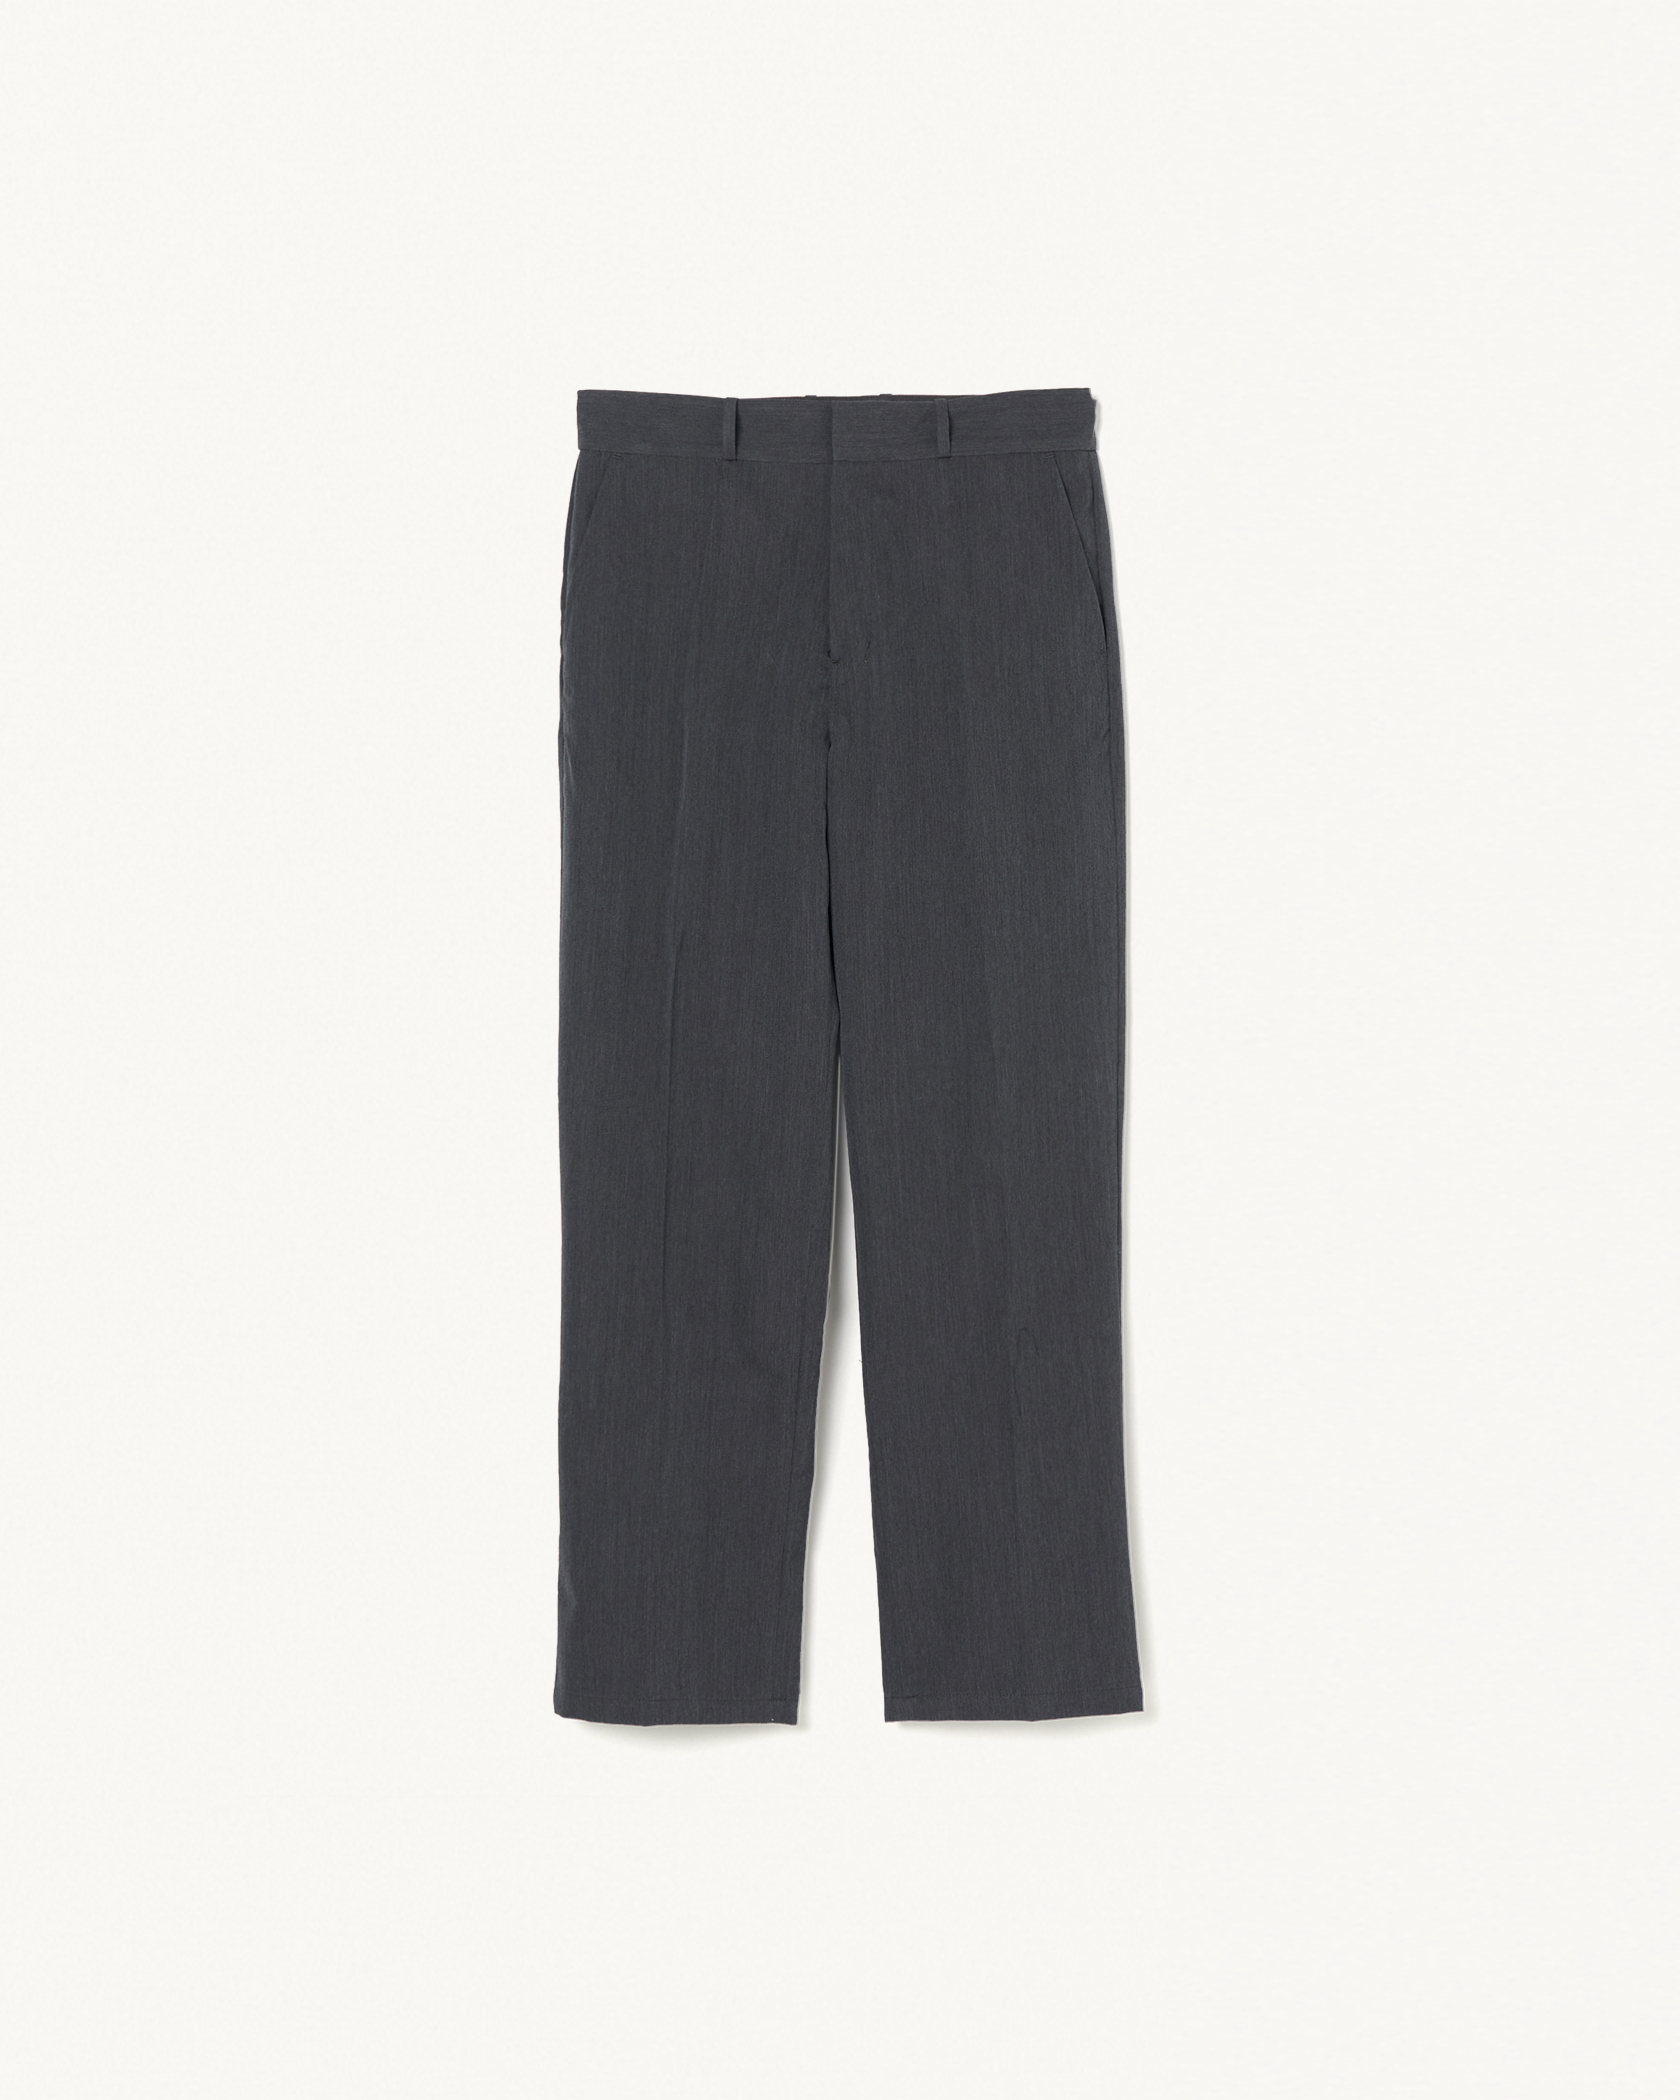 WORK TROUSERS 詳細画像 Navy 1